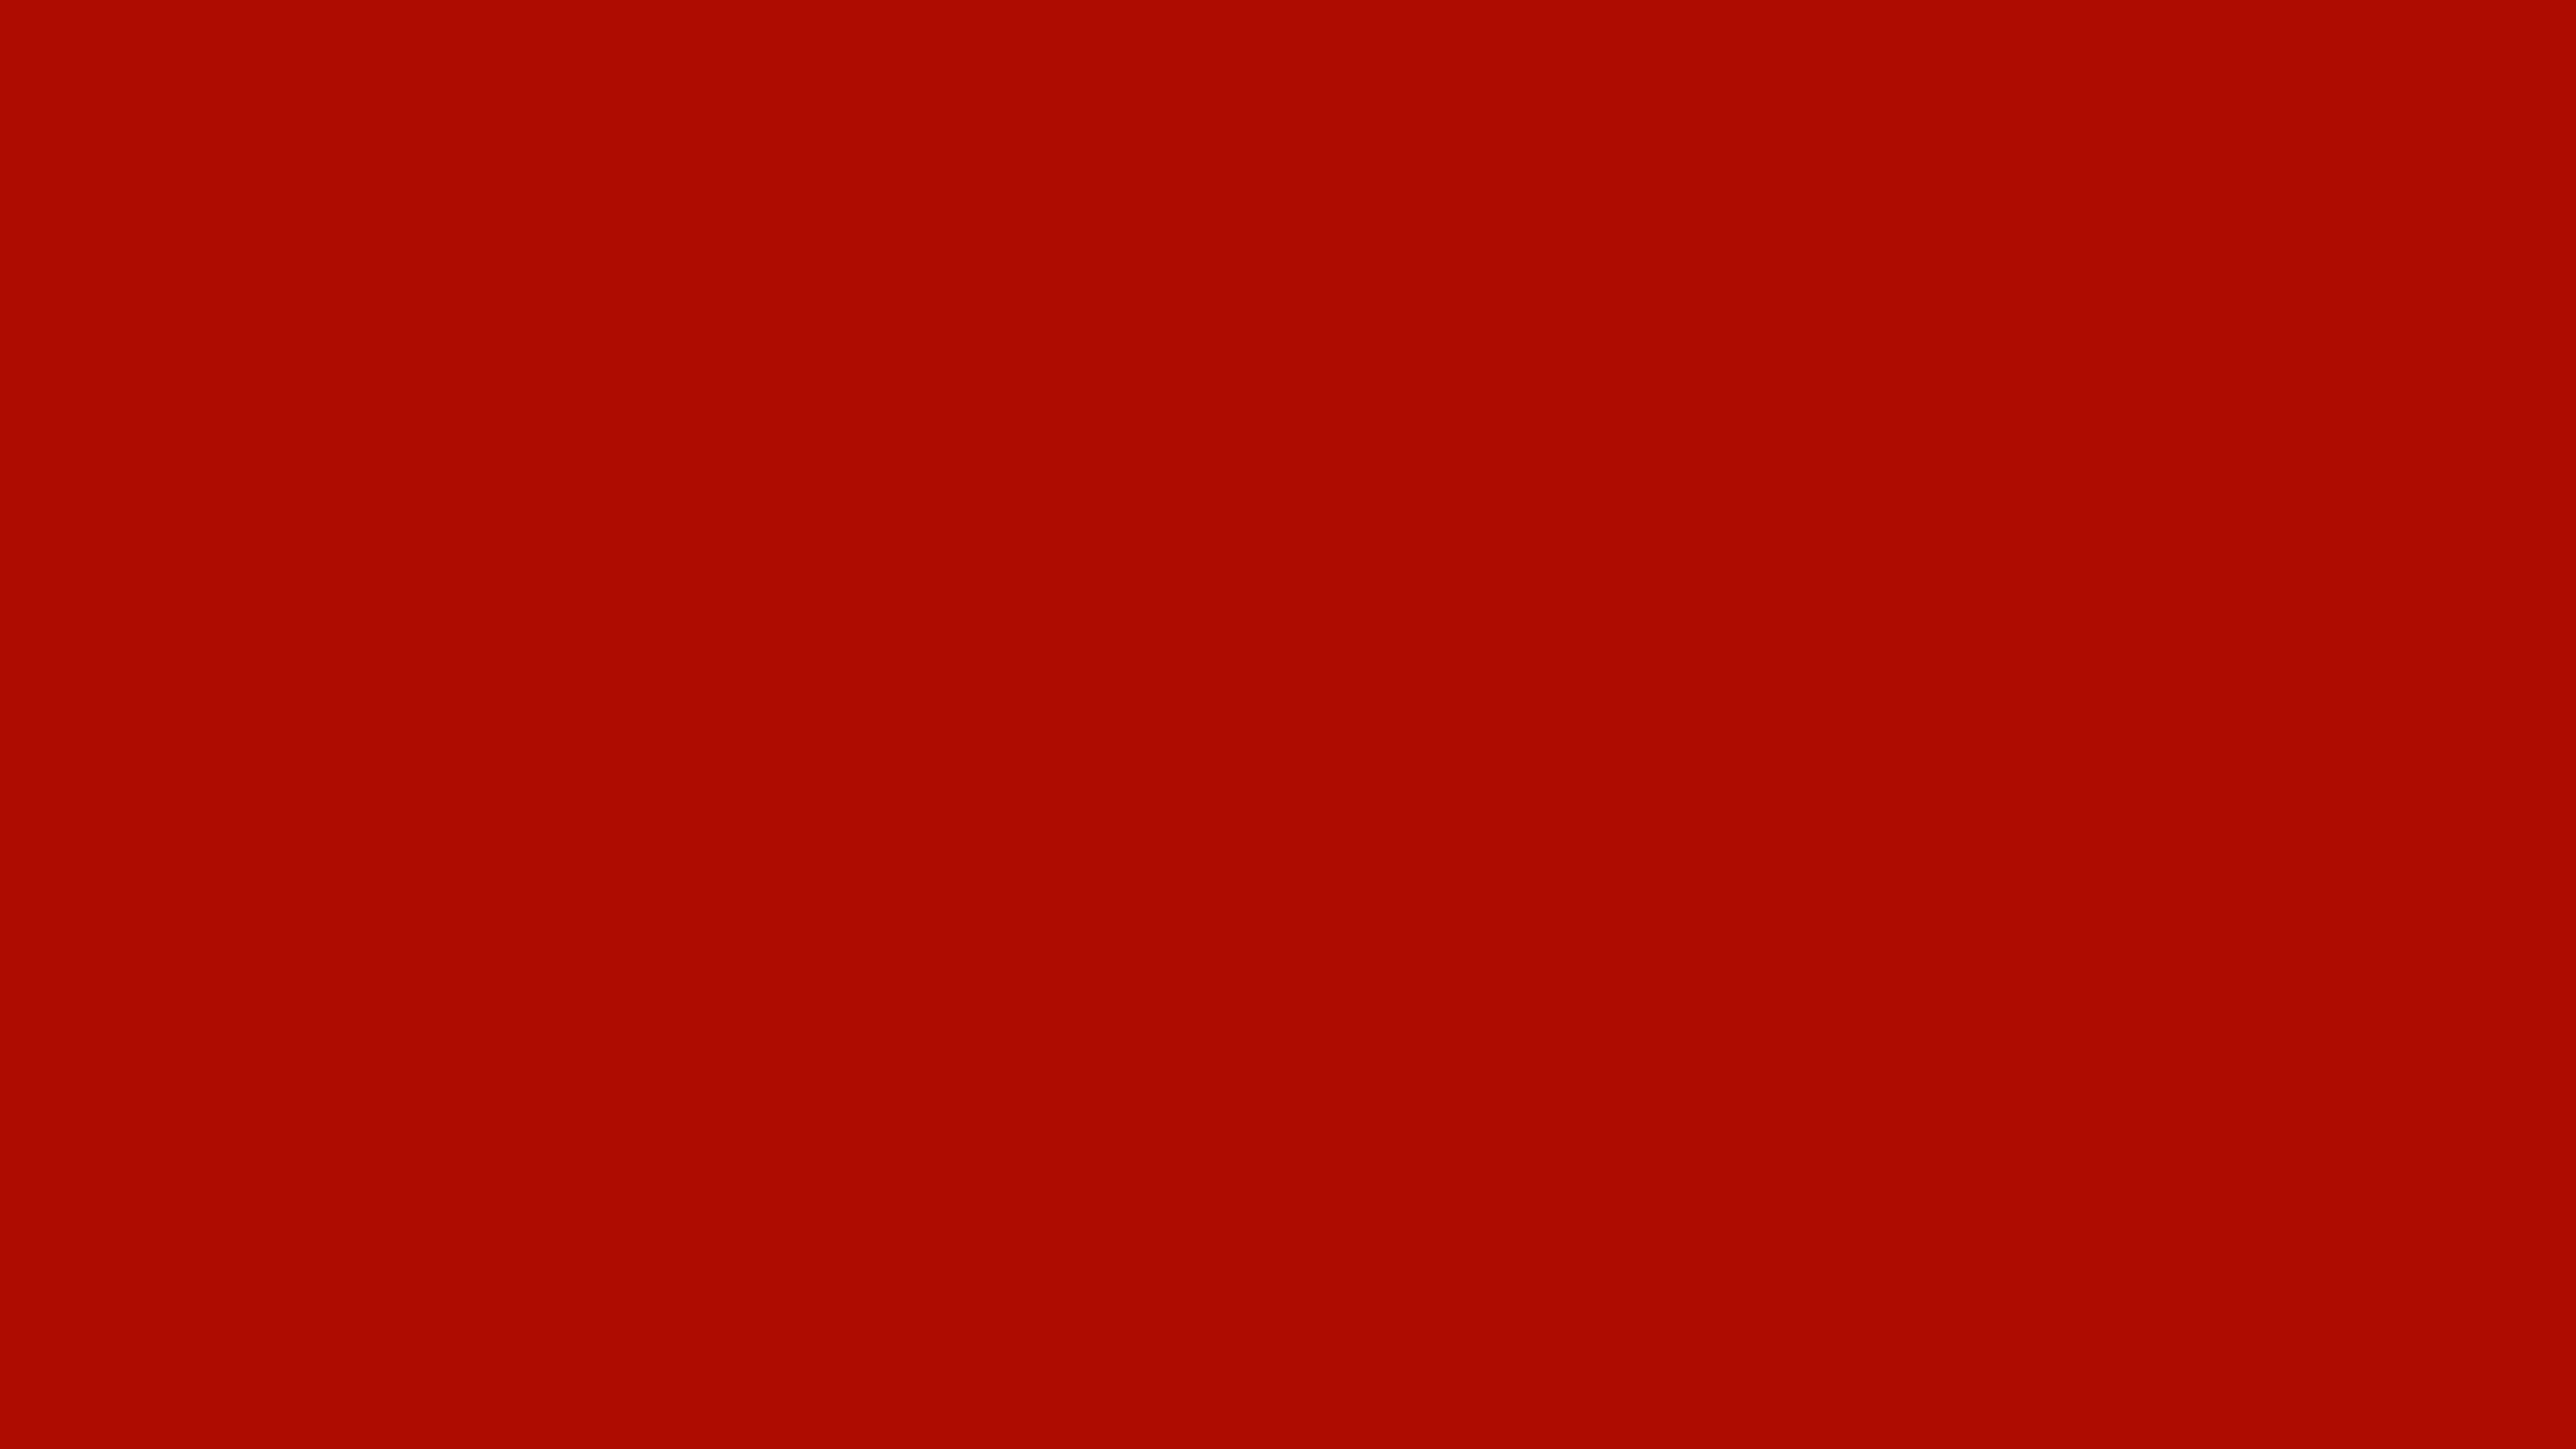 5120x2880 Mordant Red 19 Solid Color Background